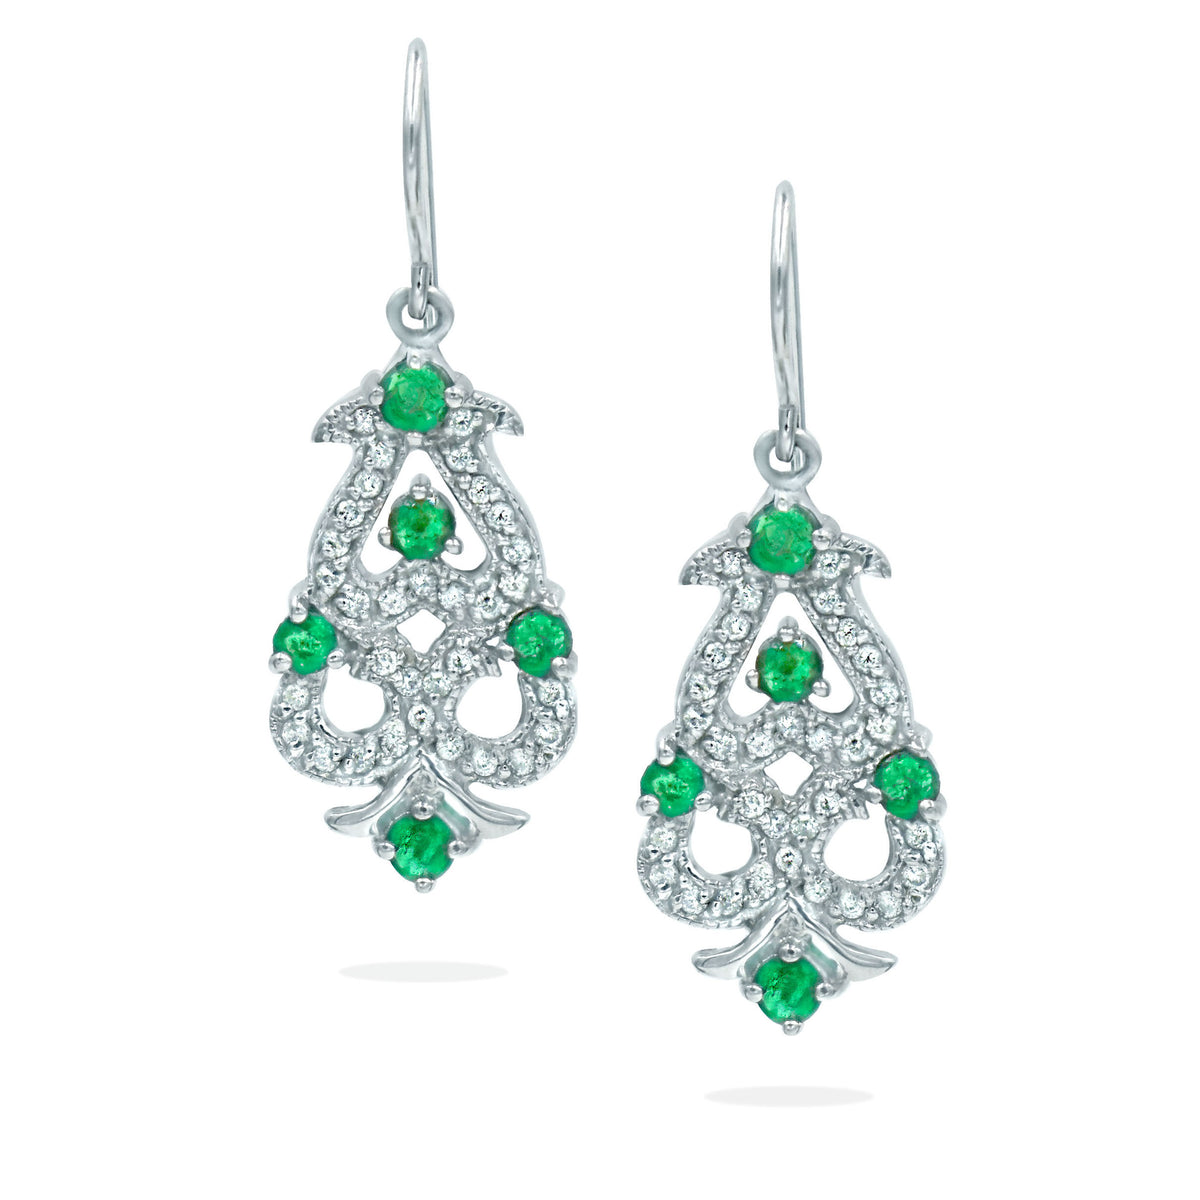 14K White Gold Open Work Diamond and Emerald Earrings